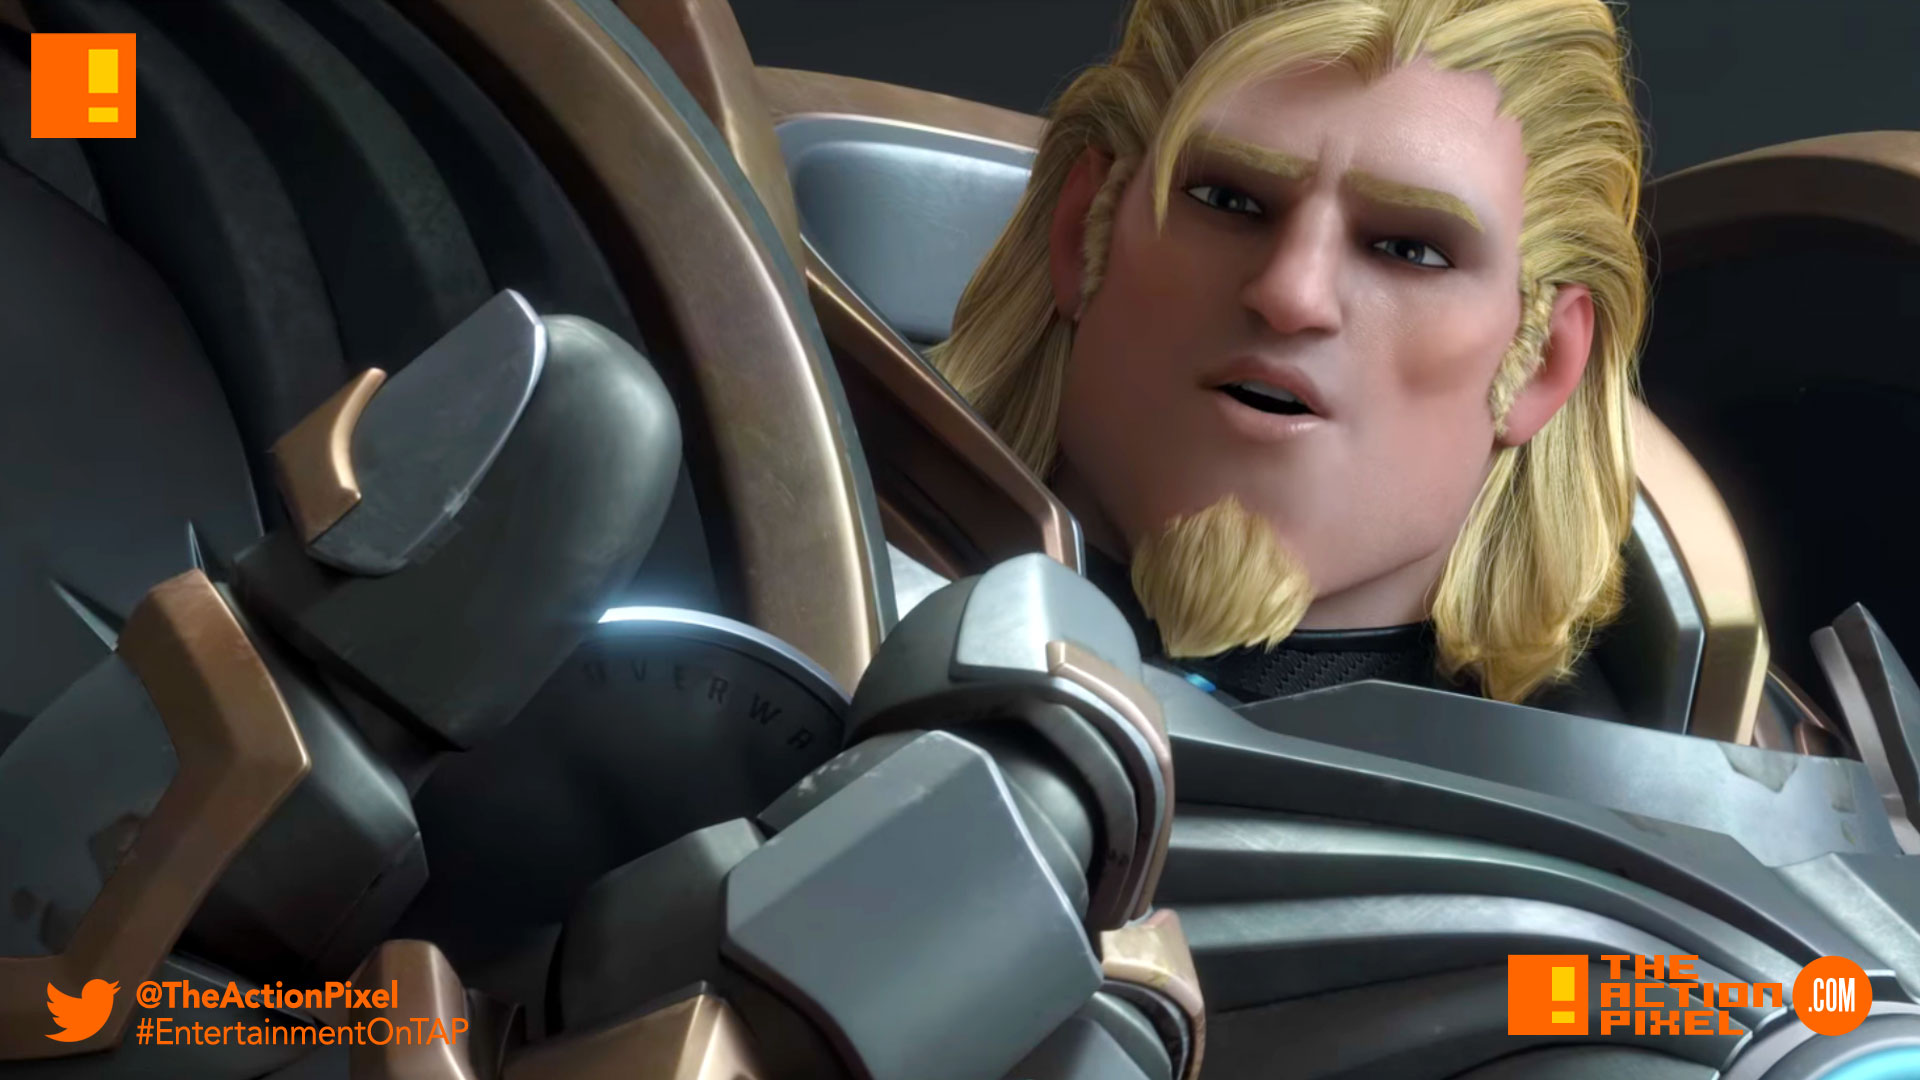 reinhardt, overwatch, blizzard entertainment, blizzard, the action pixel, entertainment on tap, @theactionpixel